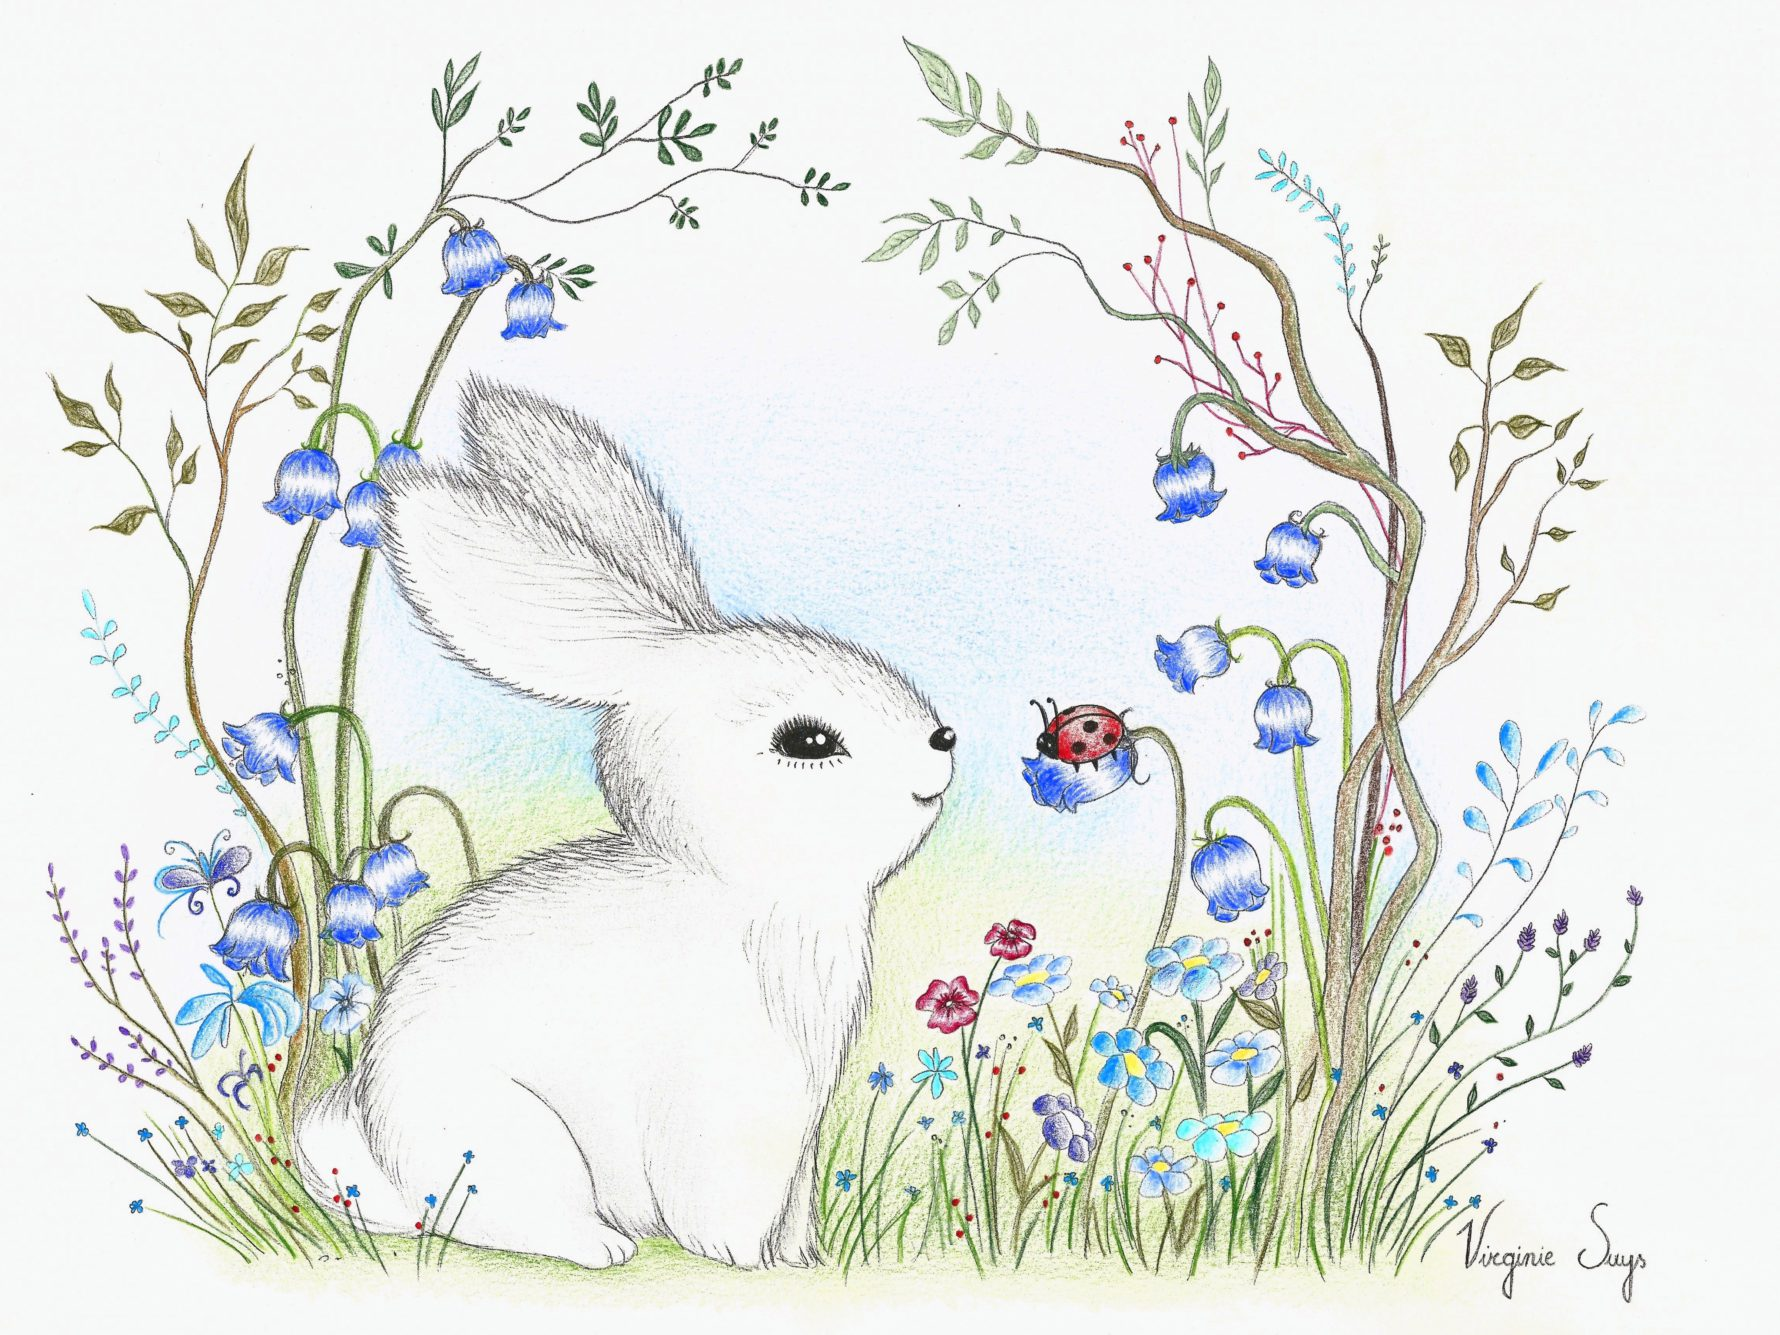 Virginie Suys Rabbit in flowers in blue & white illustration